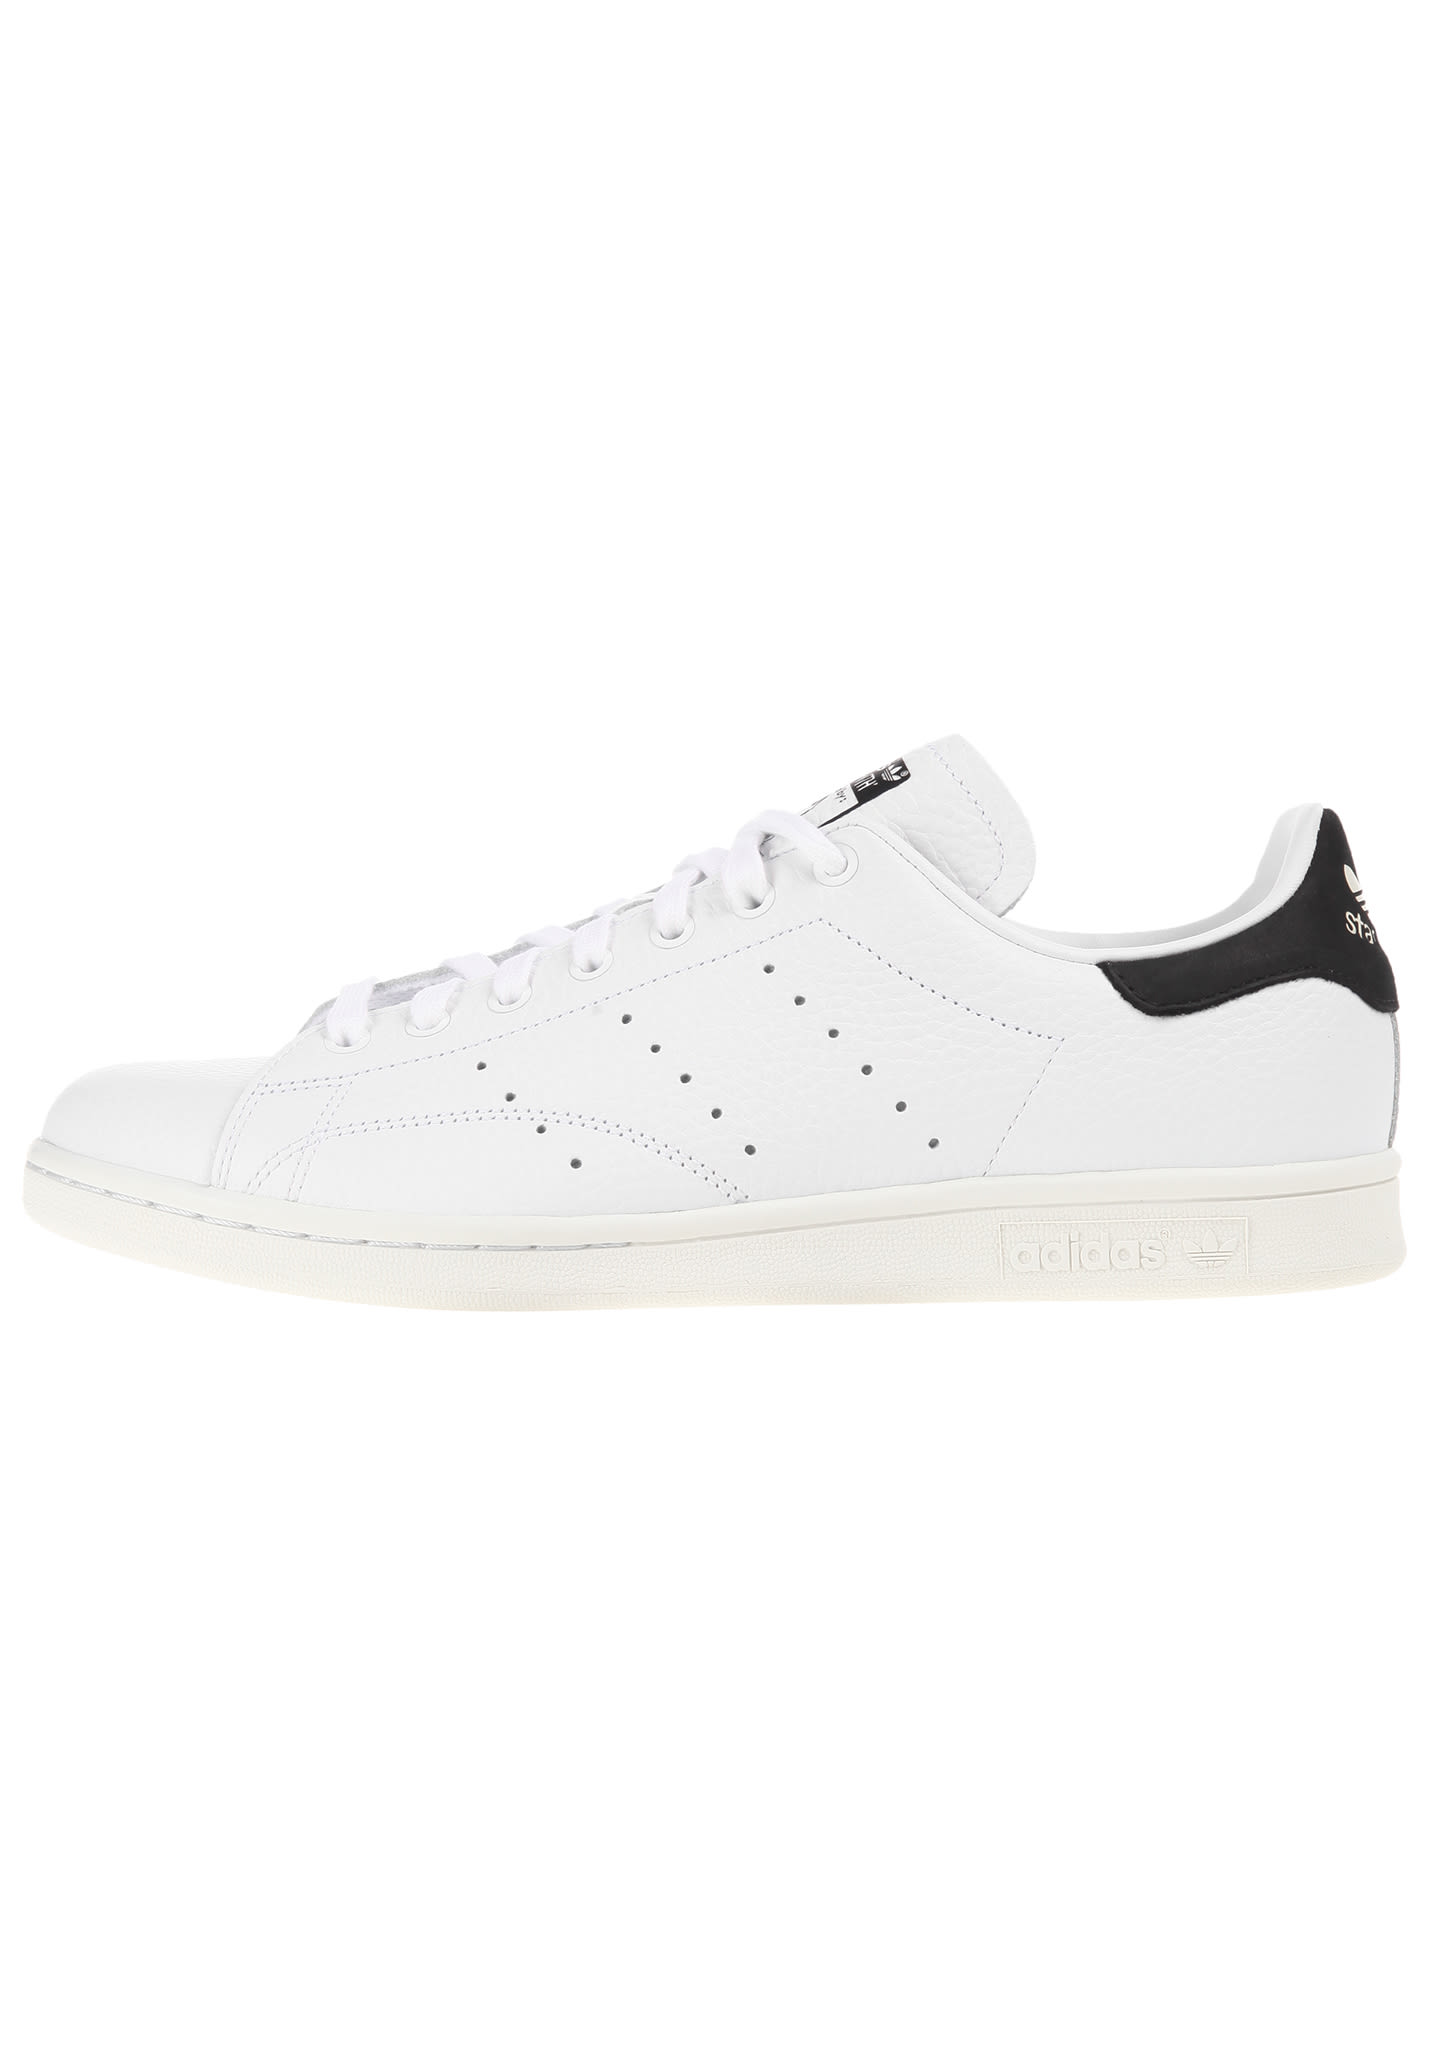 95db9afa42d7 ADIDAS ORIGINALS Stan Smith - Sneakers for Men - White - Planet Sports